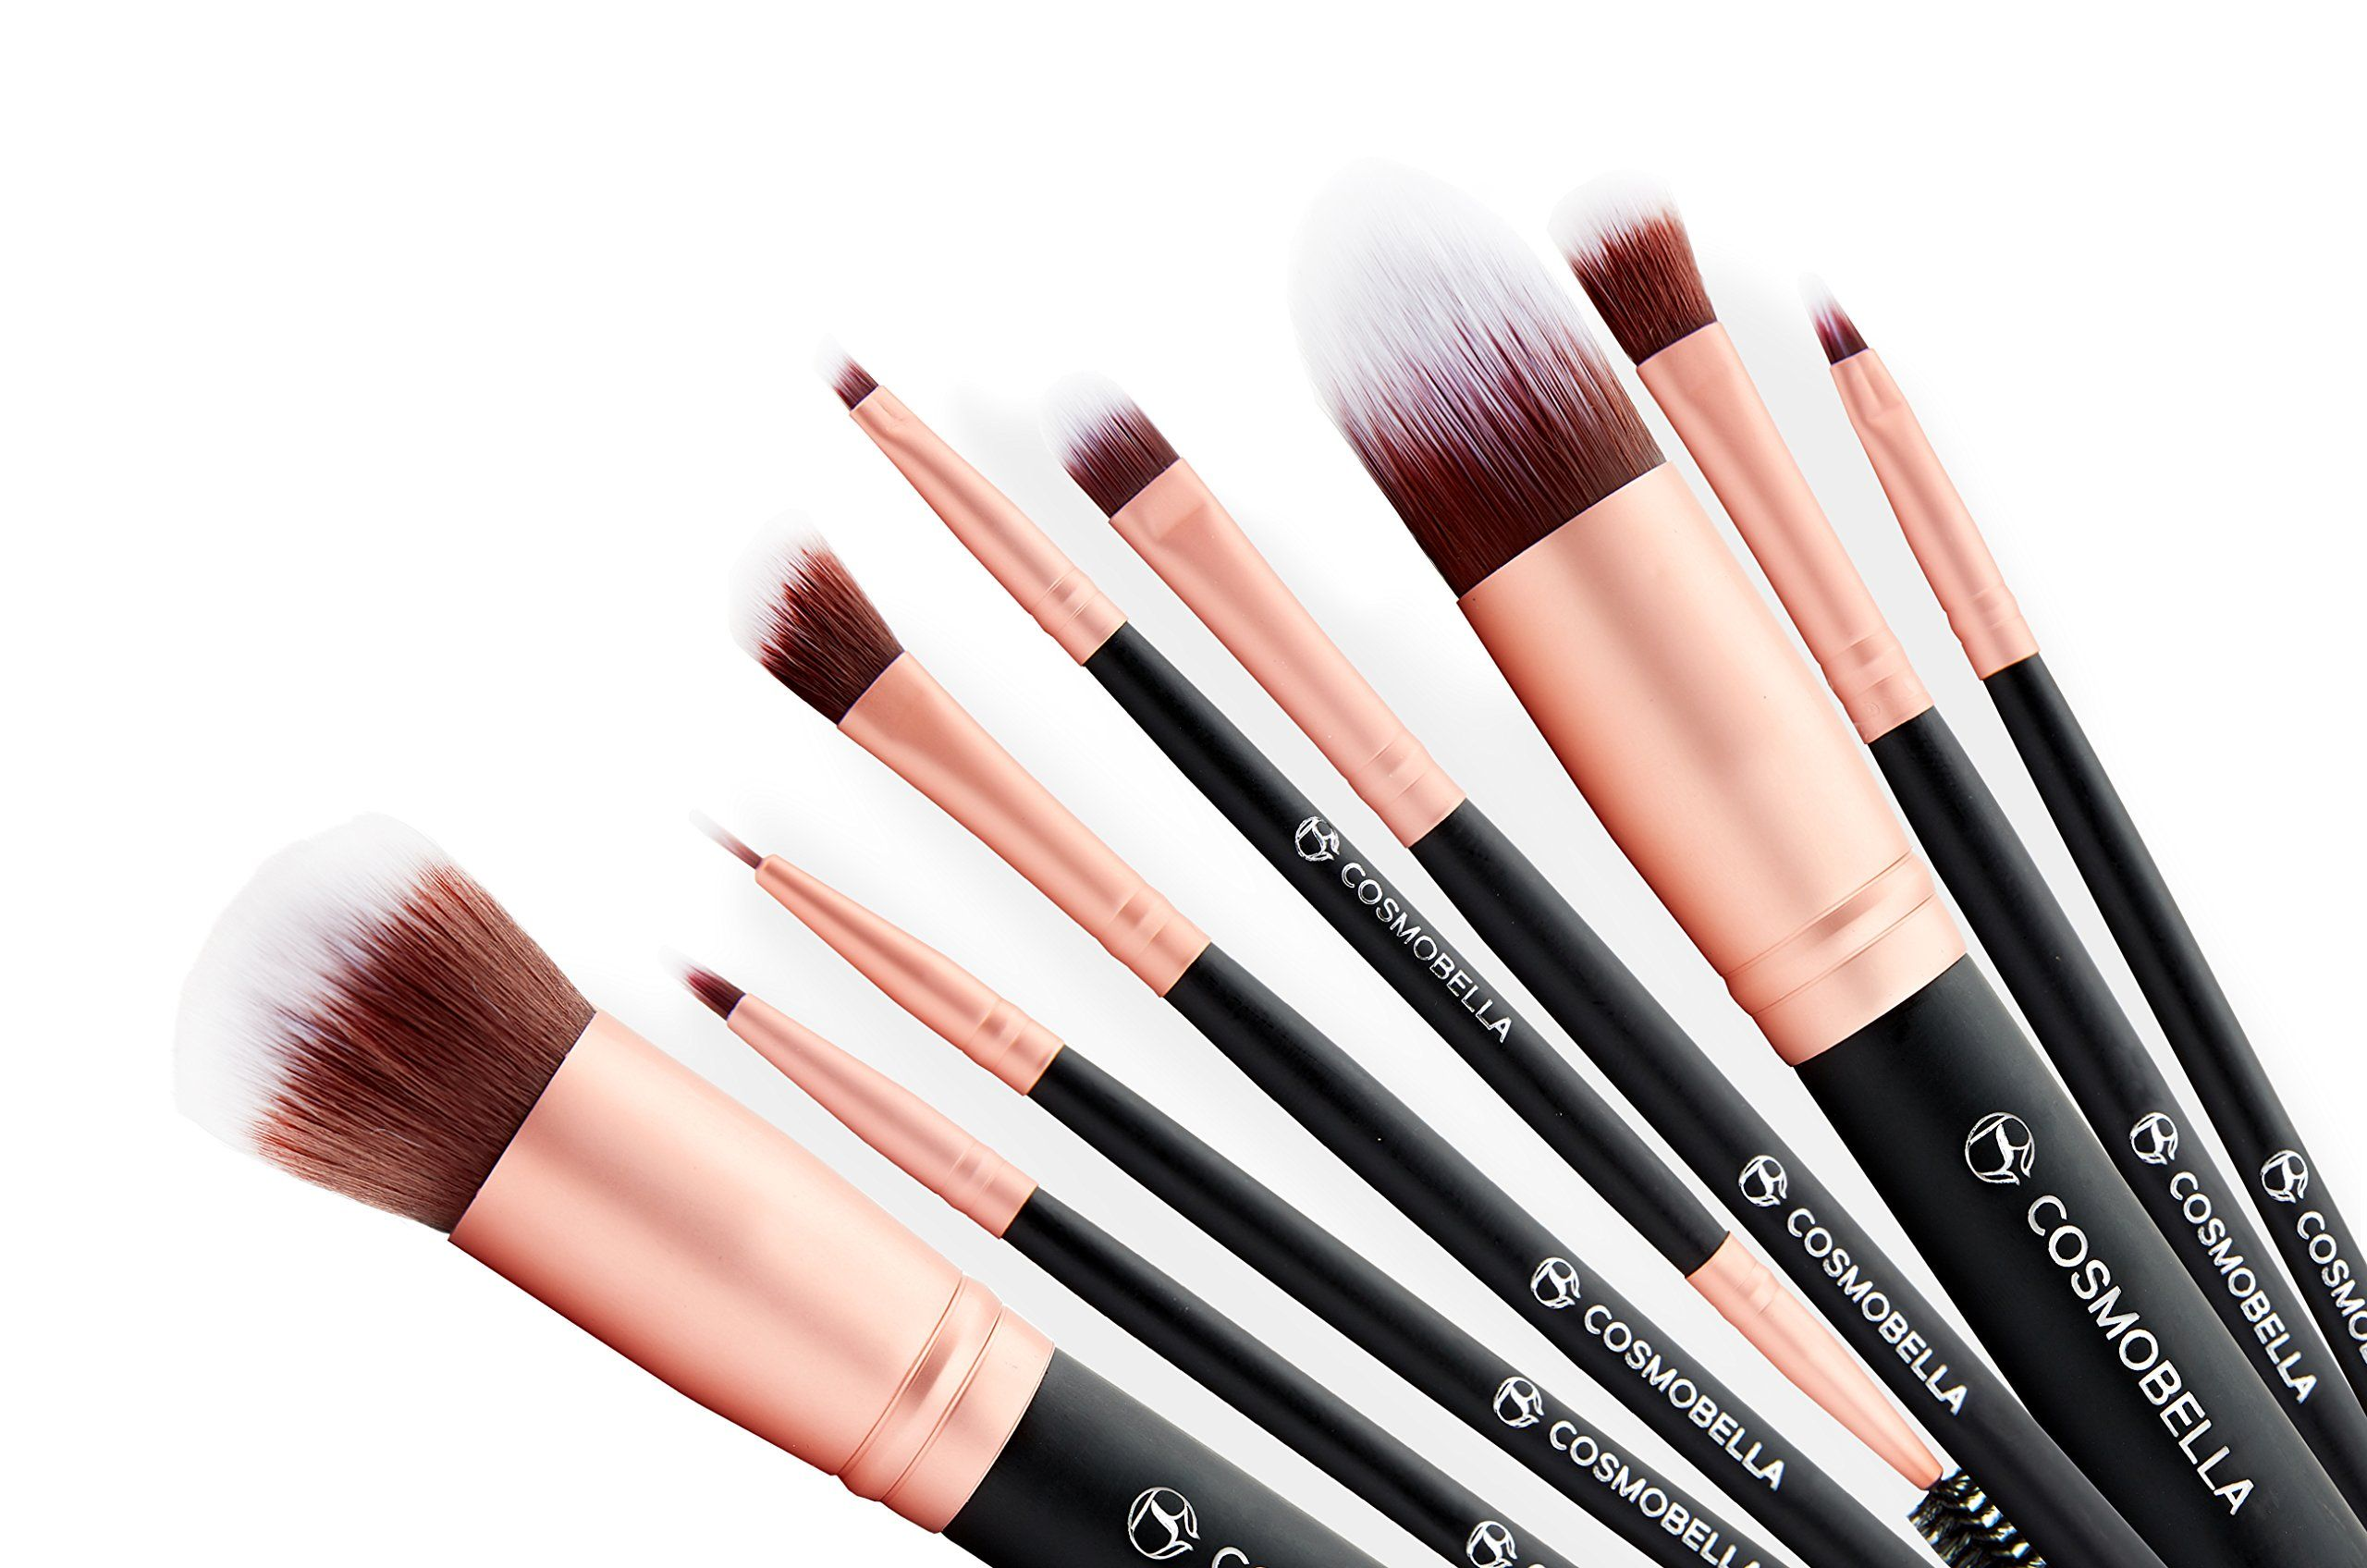 Cosmobella Premium Synthetic Kabuki Makeup Brush Set